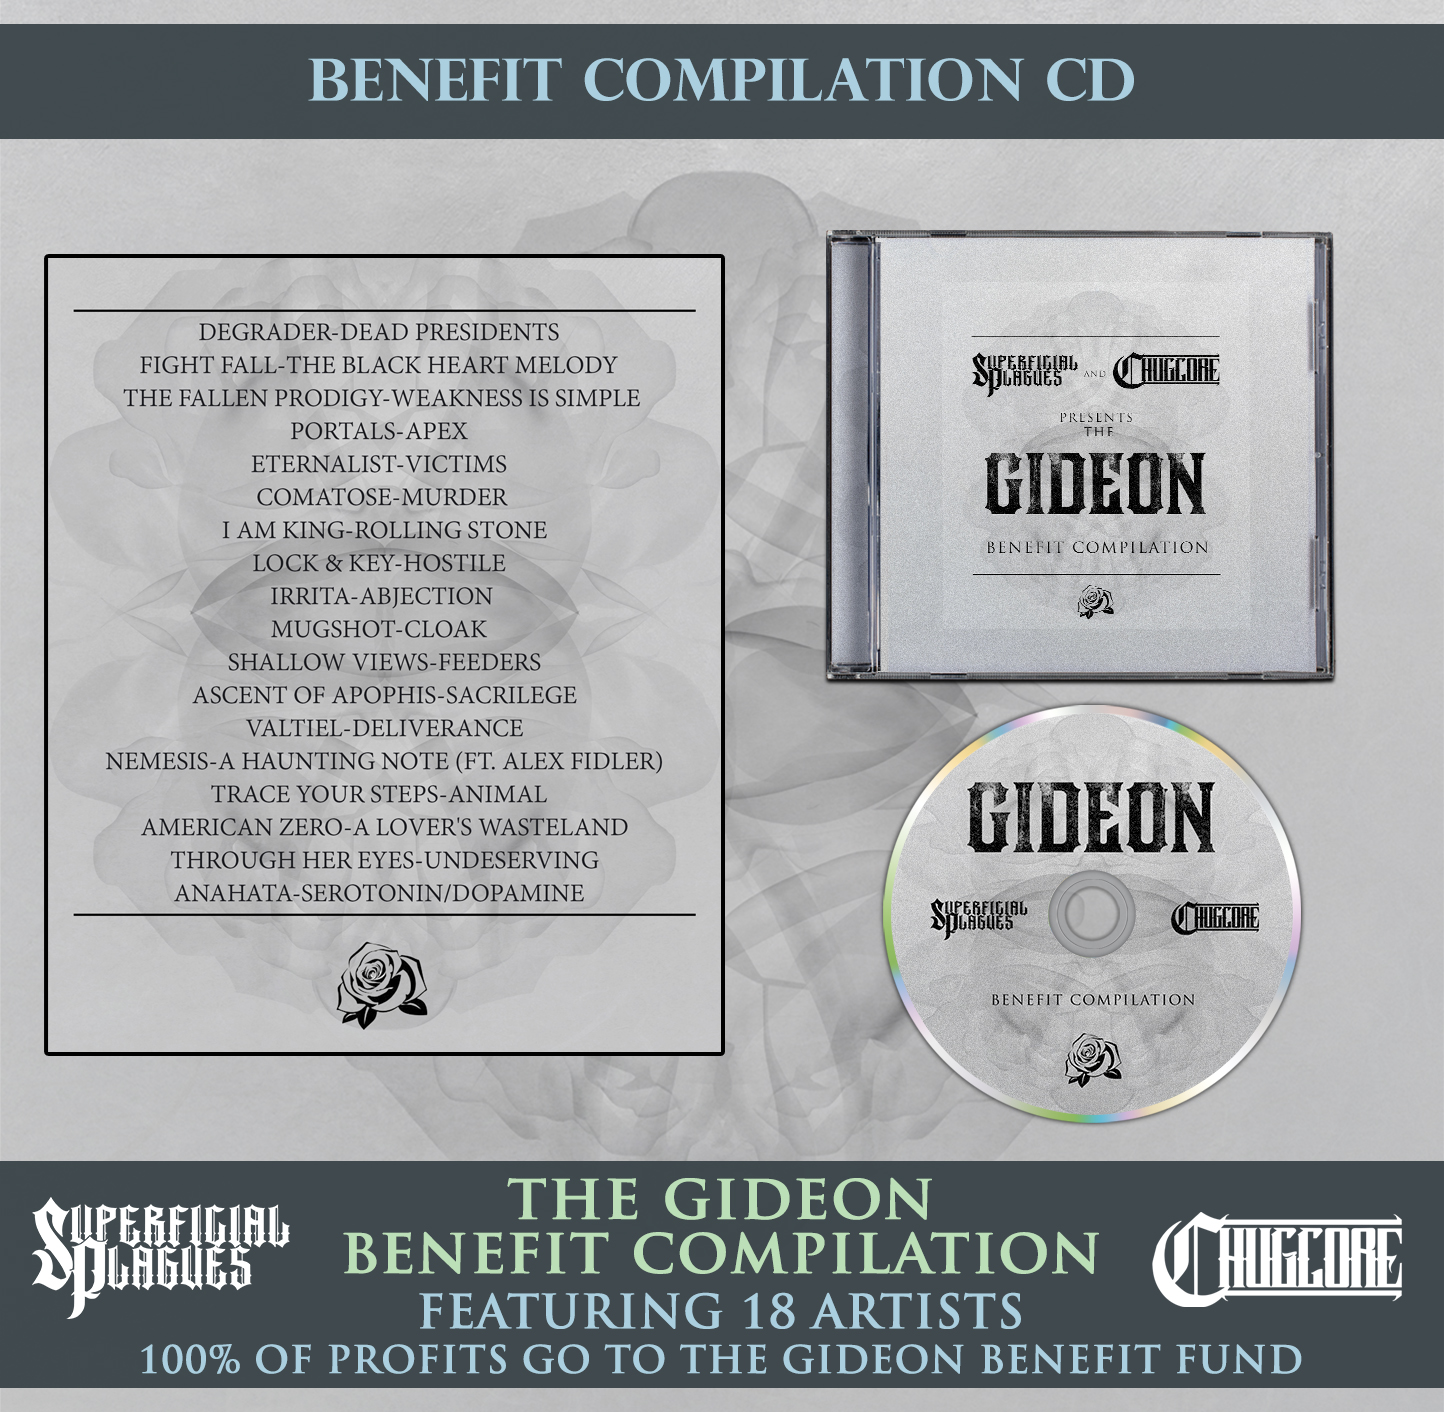 The Gideon Benefit Compilation from Chugcore